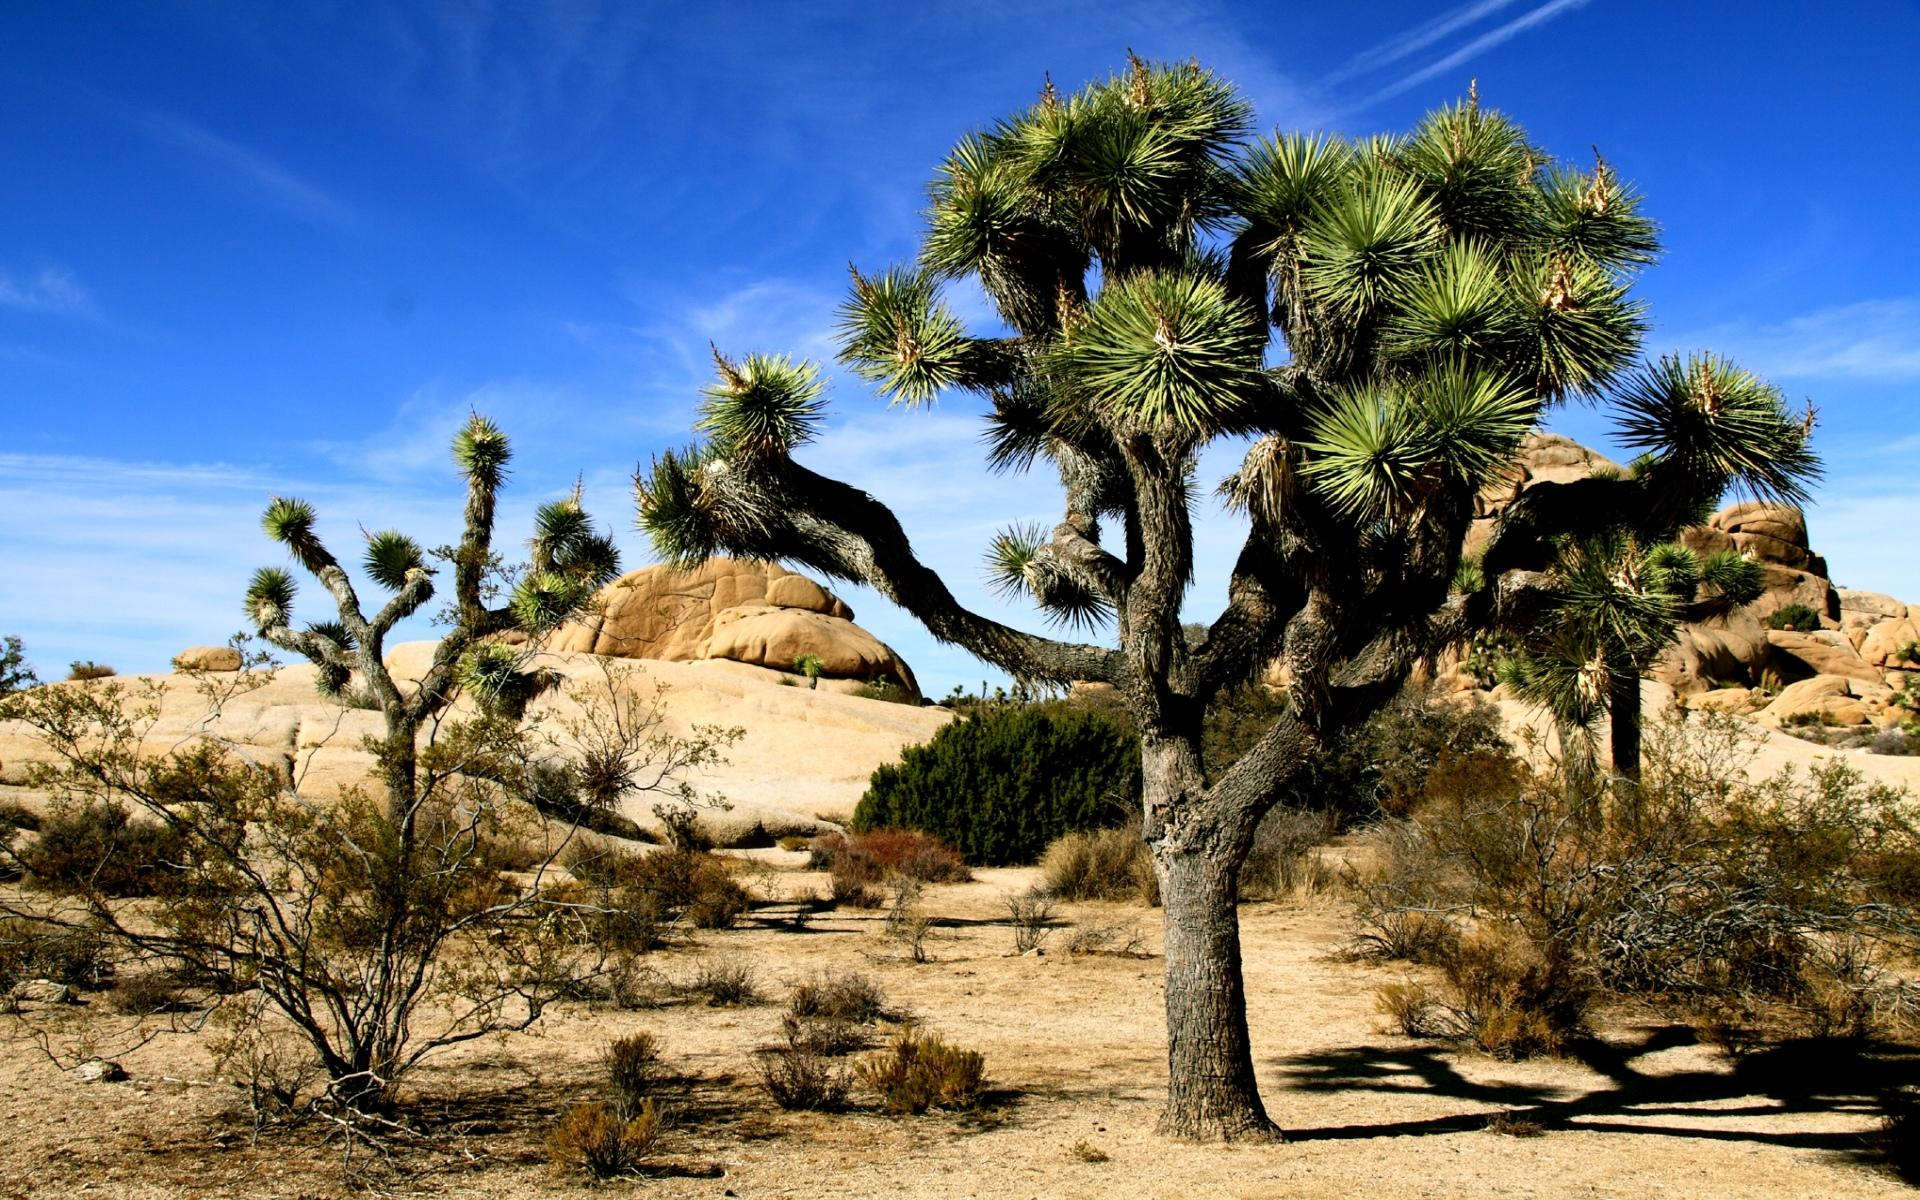 Joshua Tree National Park at 1152 x 864 size wallpapers HD quality